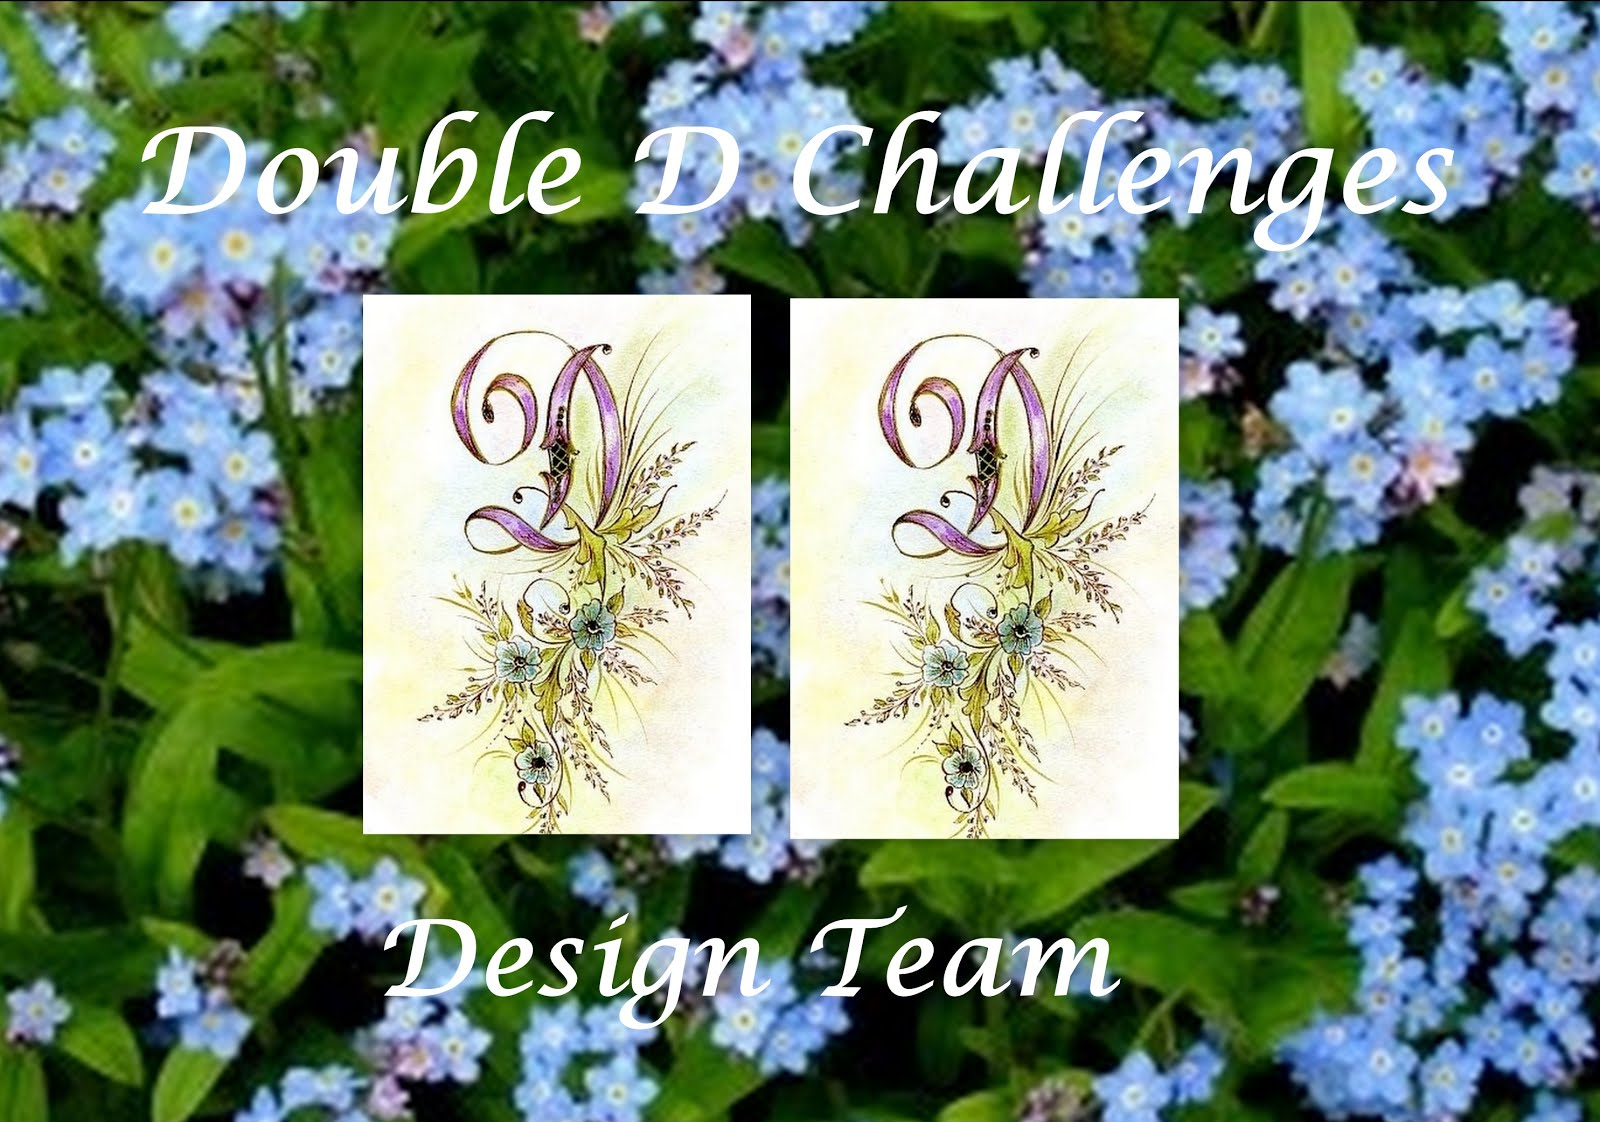 Double D Design Team September 7, 2016 - To Present